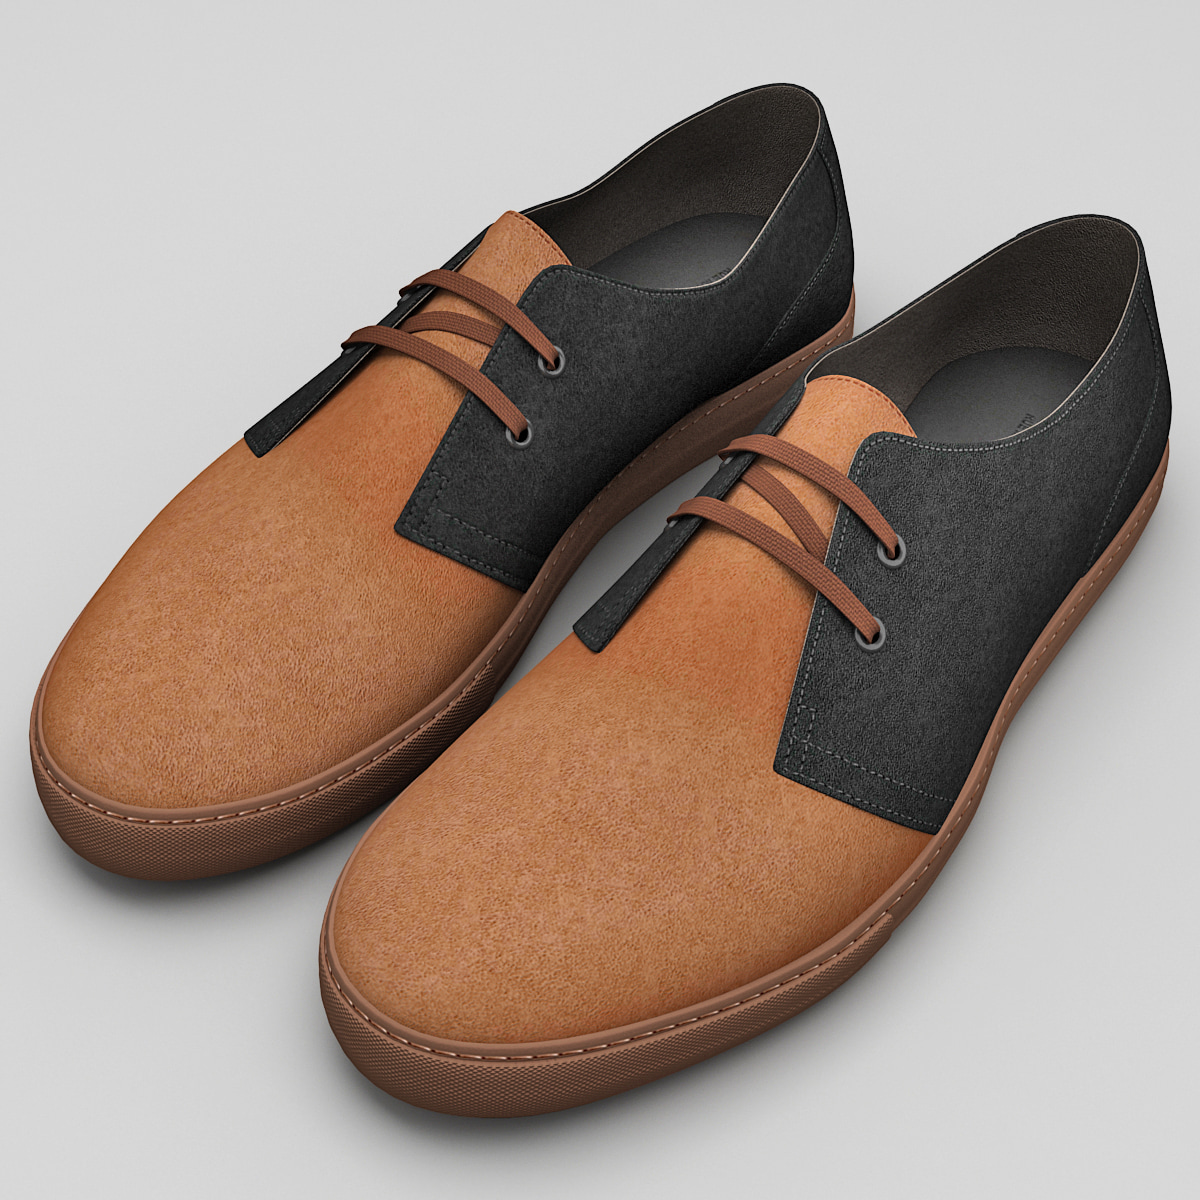 Men_Shoes_APC_V2_0001.jpg